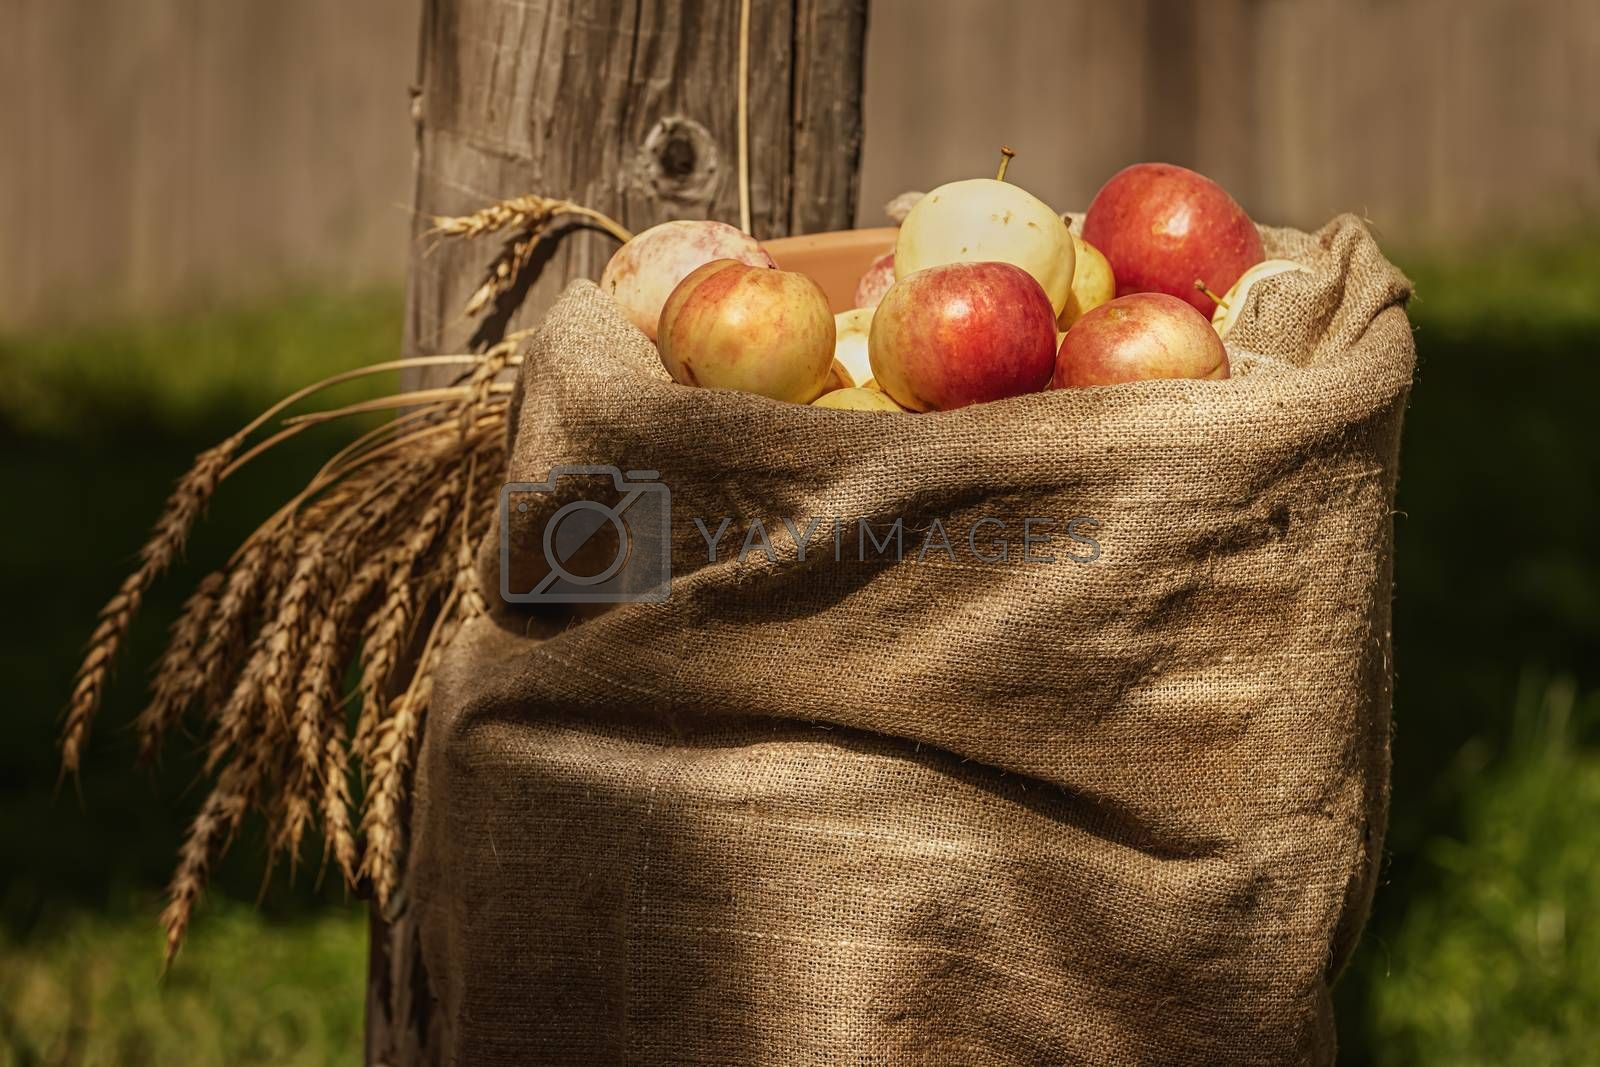 Burlap sackof ripe apples in the courtyard